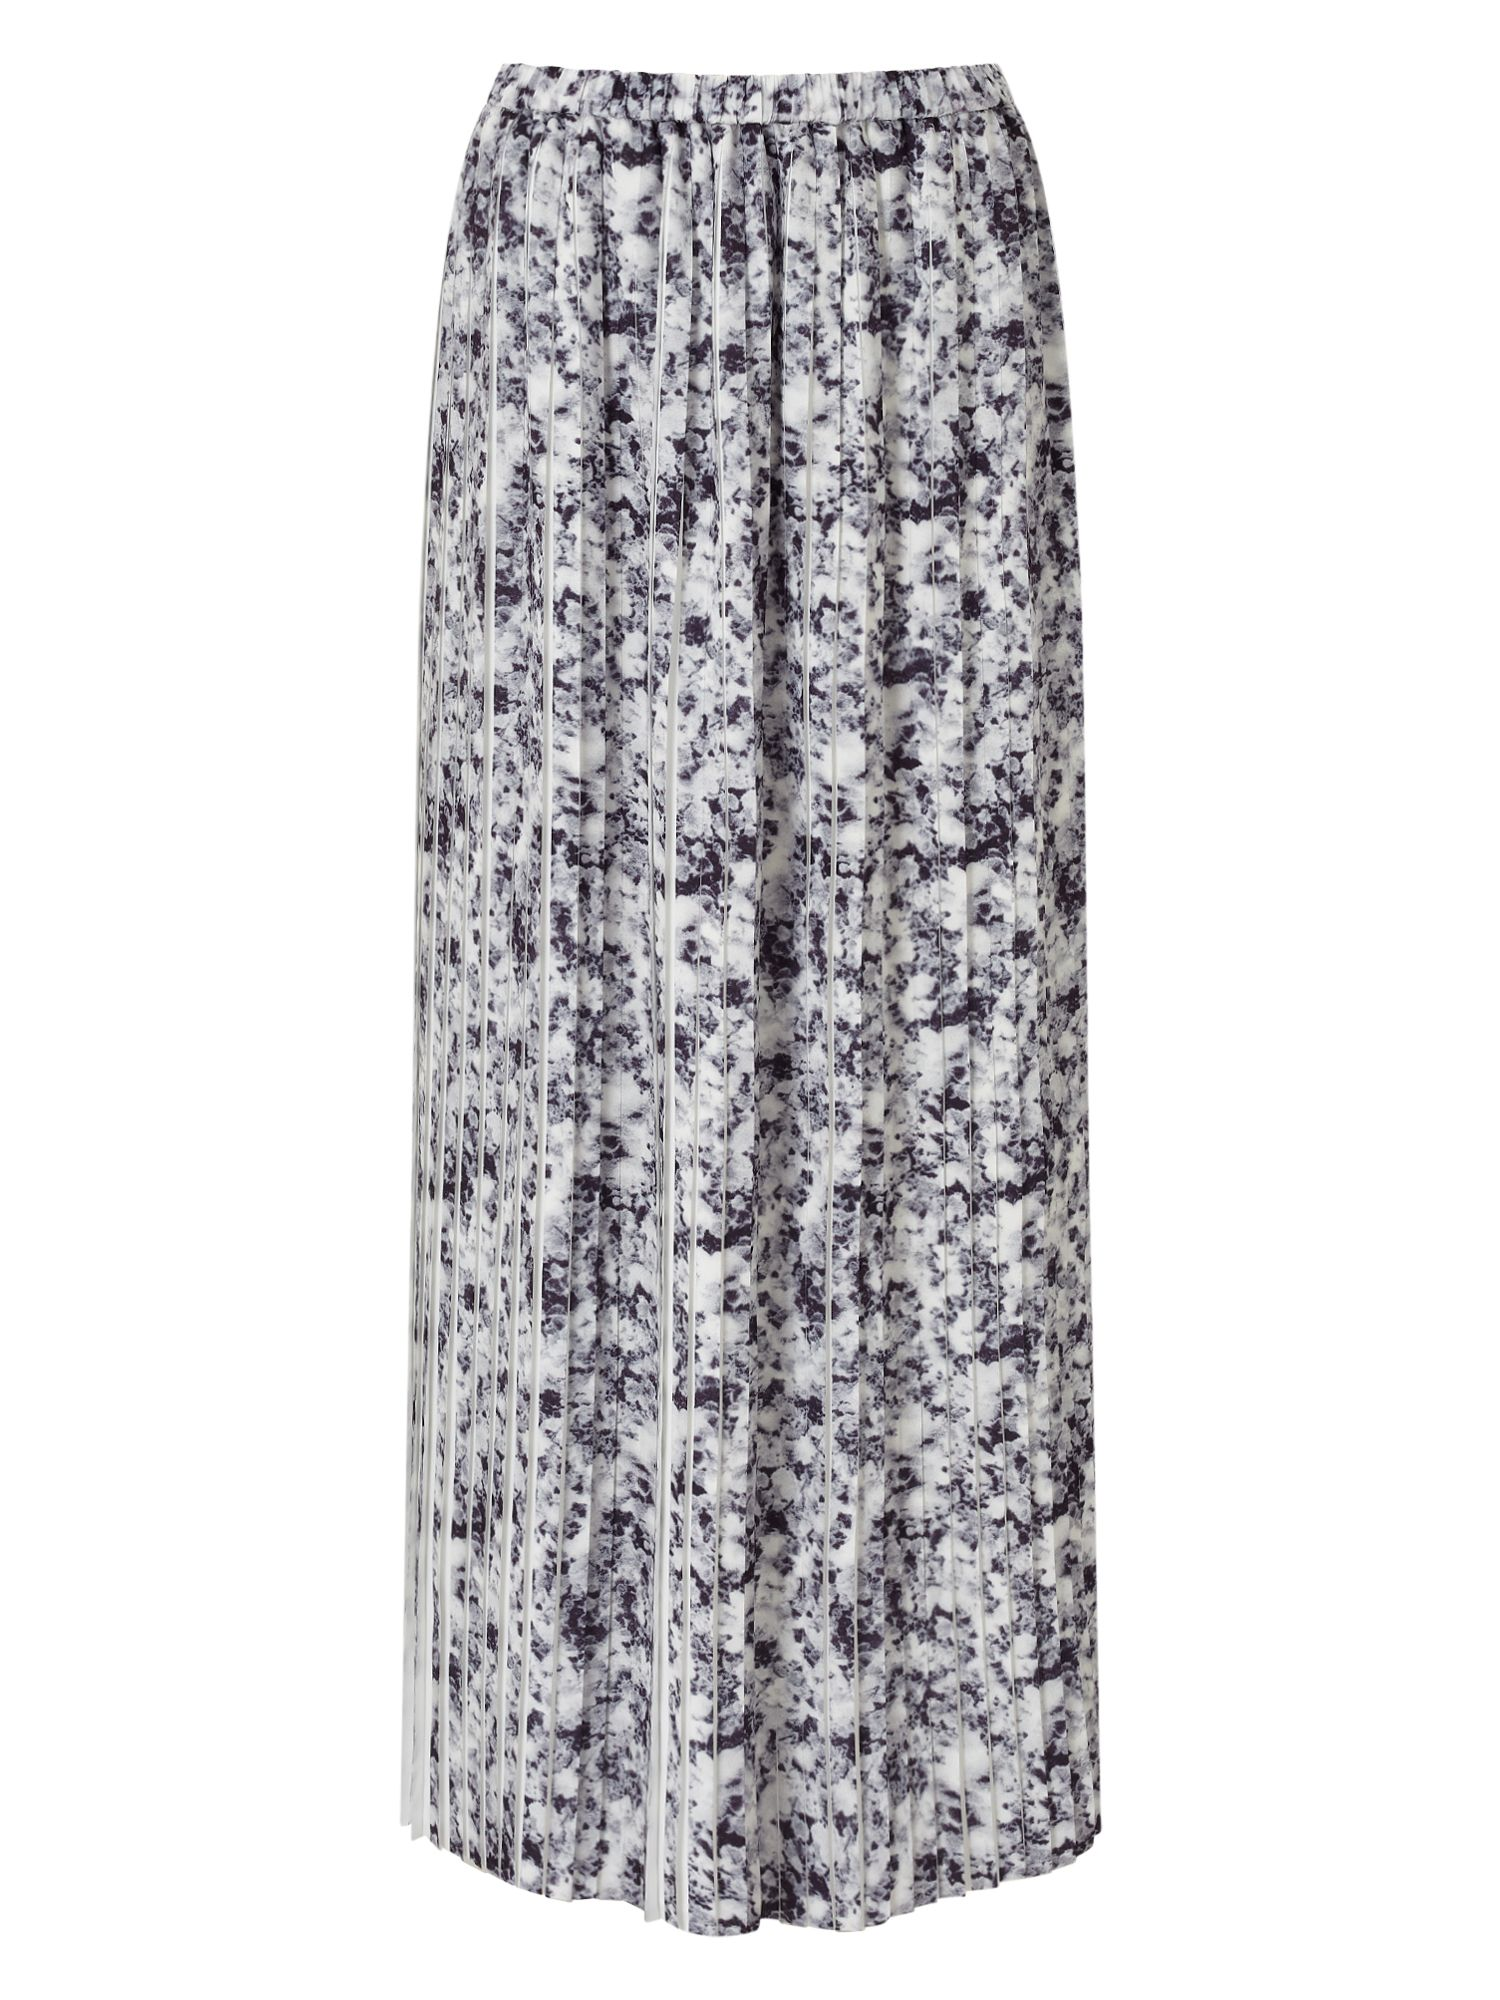 Jacques Vert Printed Plisse Contrast Skirt, Multi-Coloured